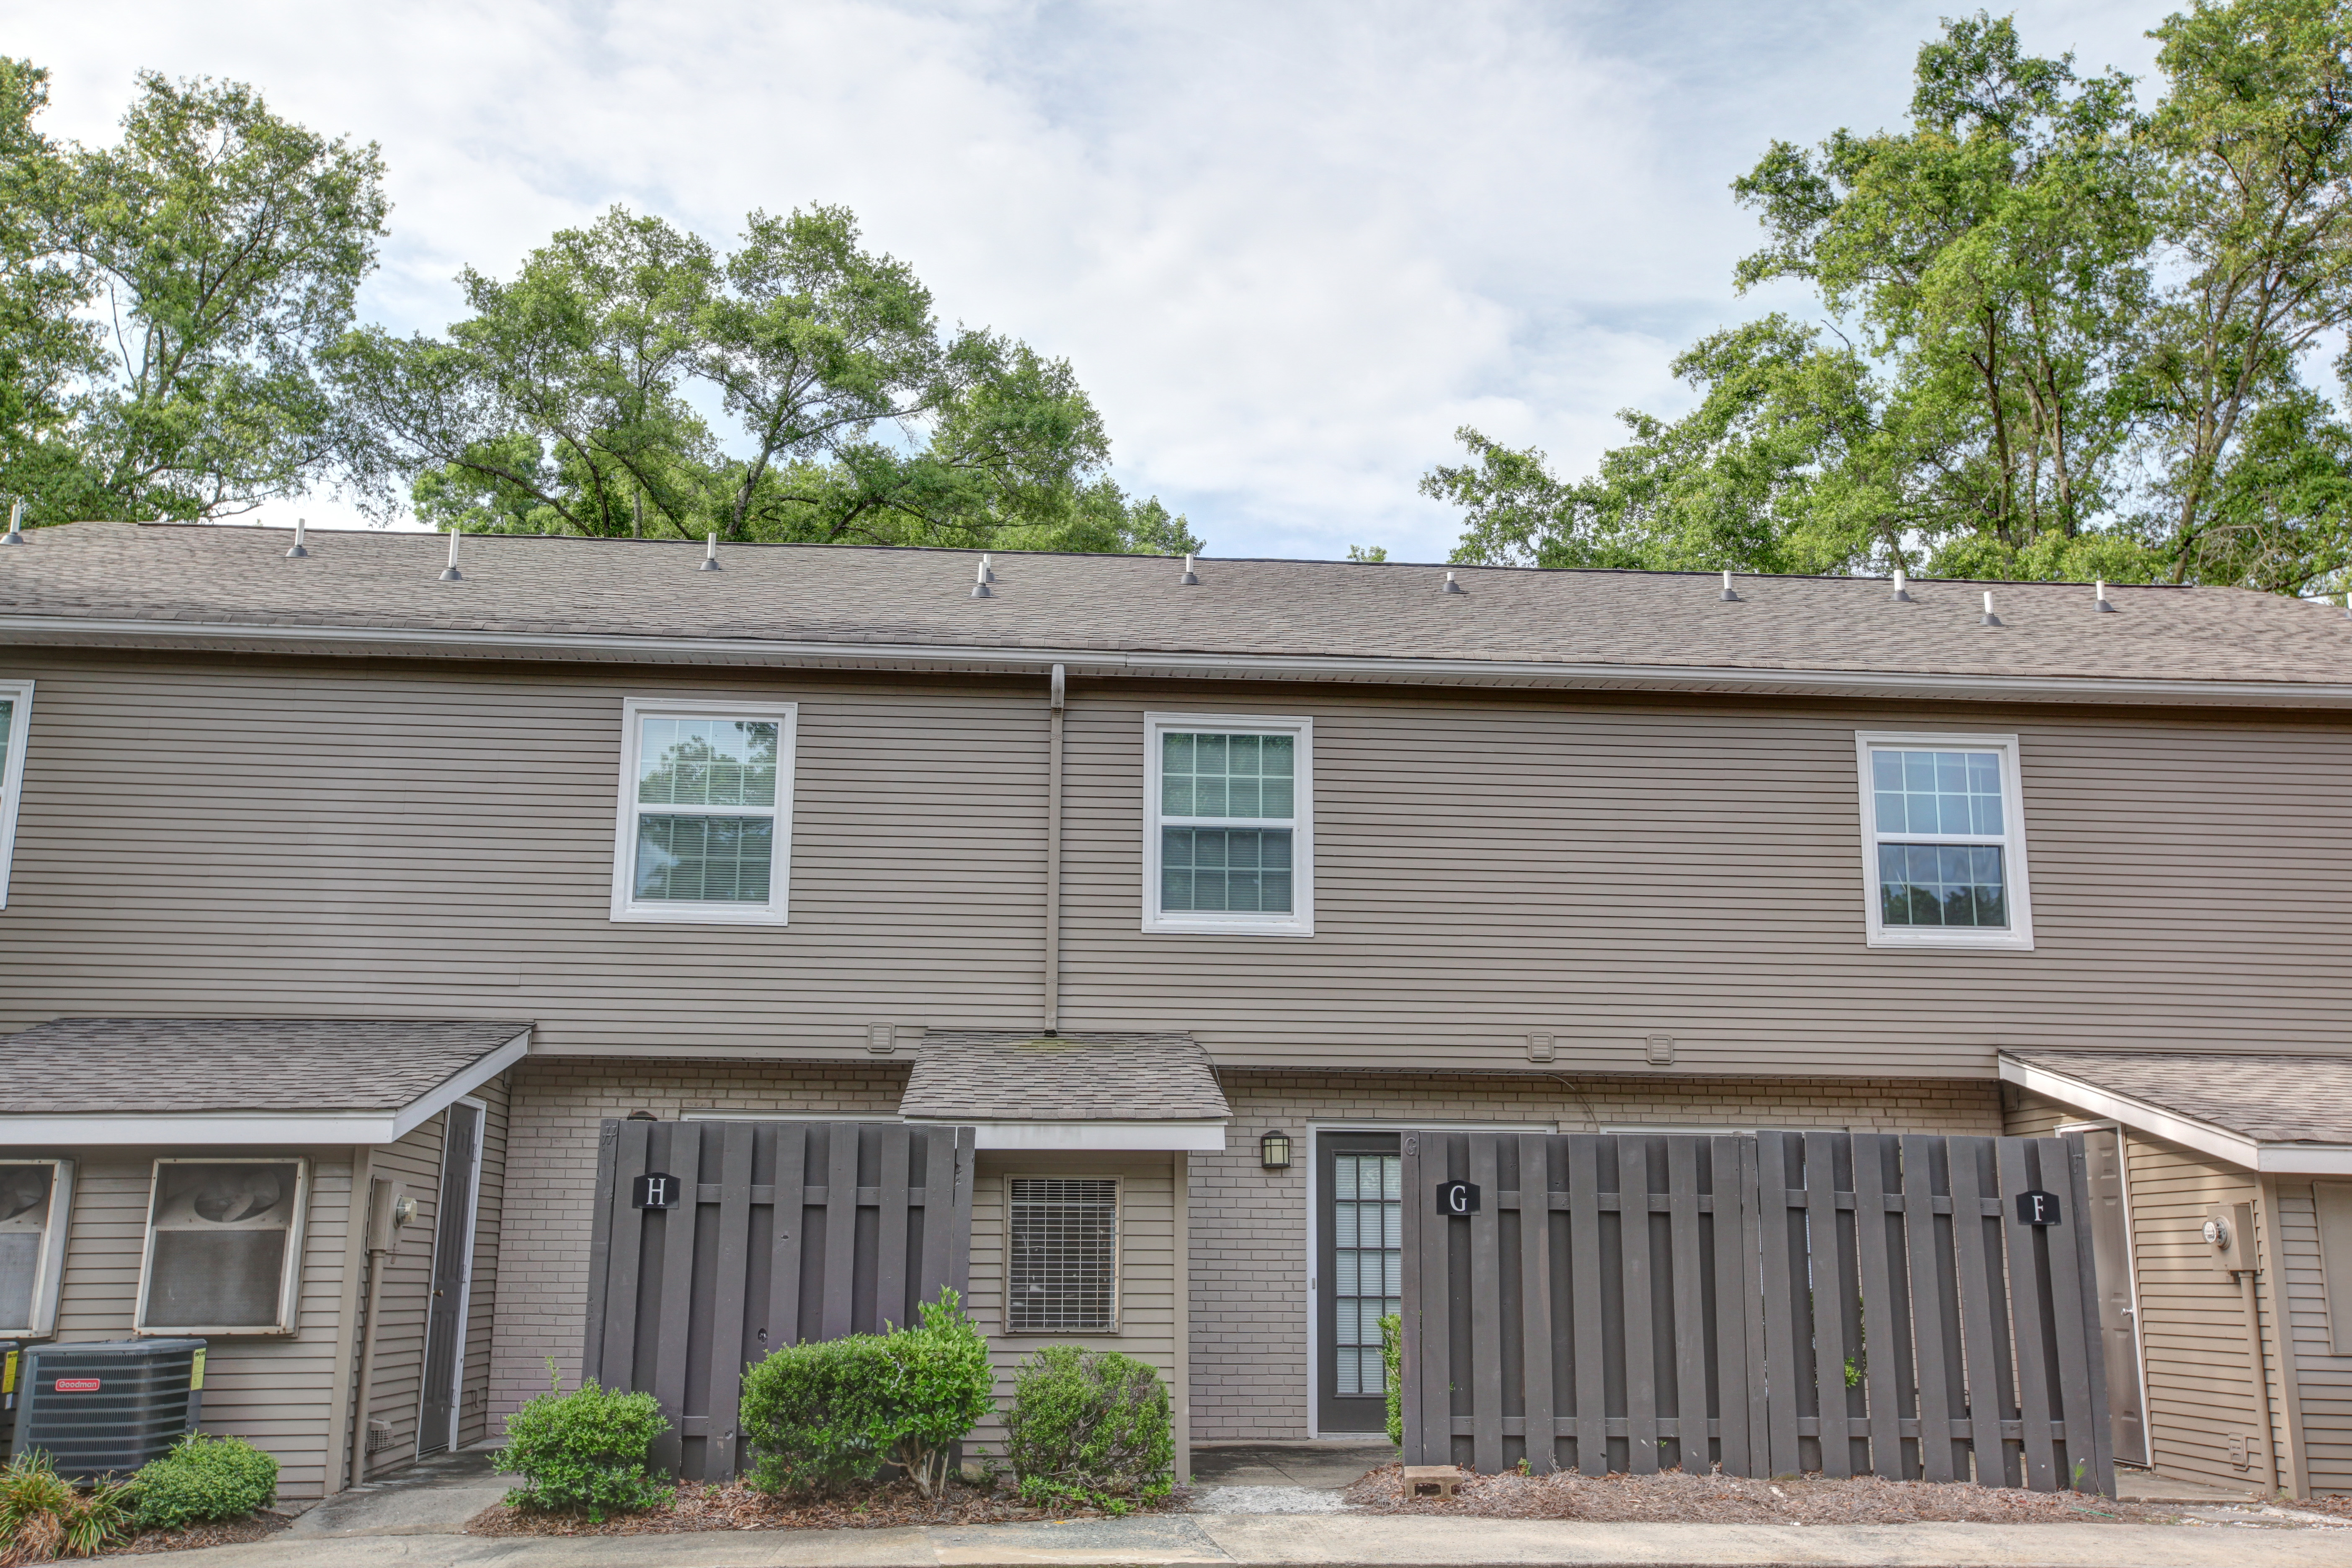 exterior locations cottages myrtle south brandmortgage carolina sc beach cottage